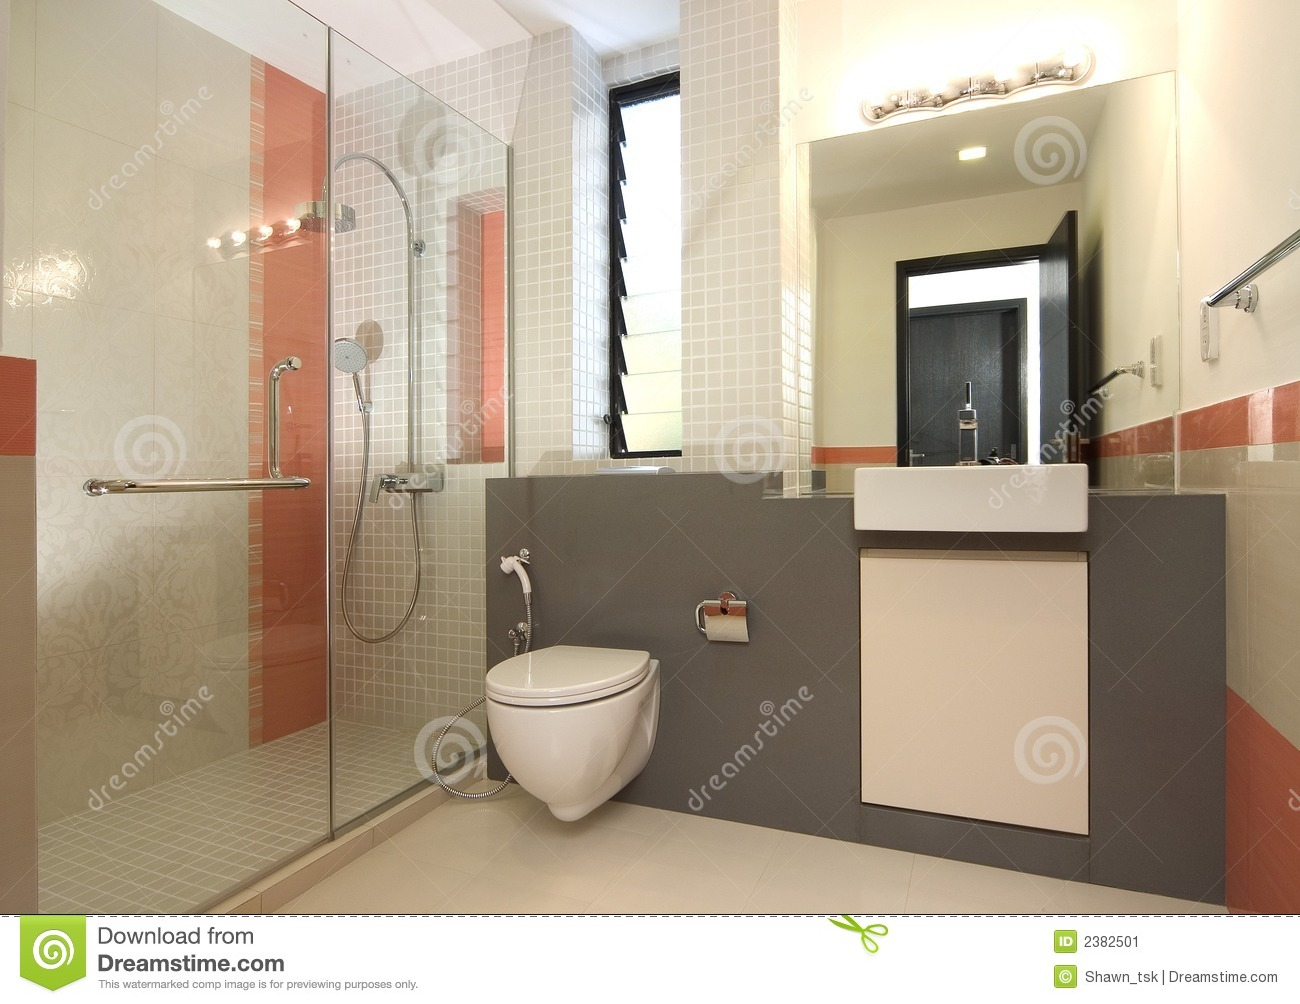 Interior design bathroom stock image image of light for Bathroom designs 12x8